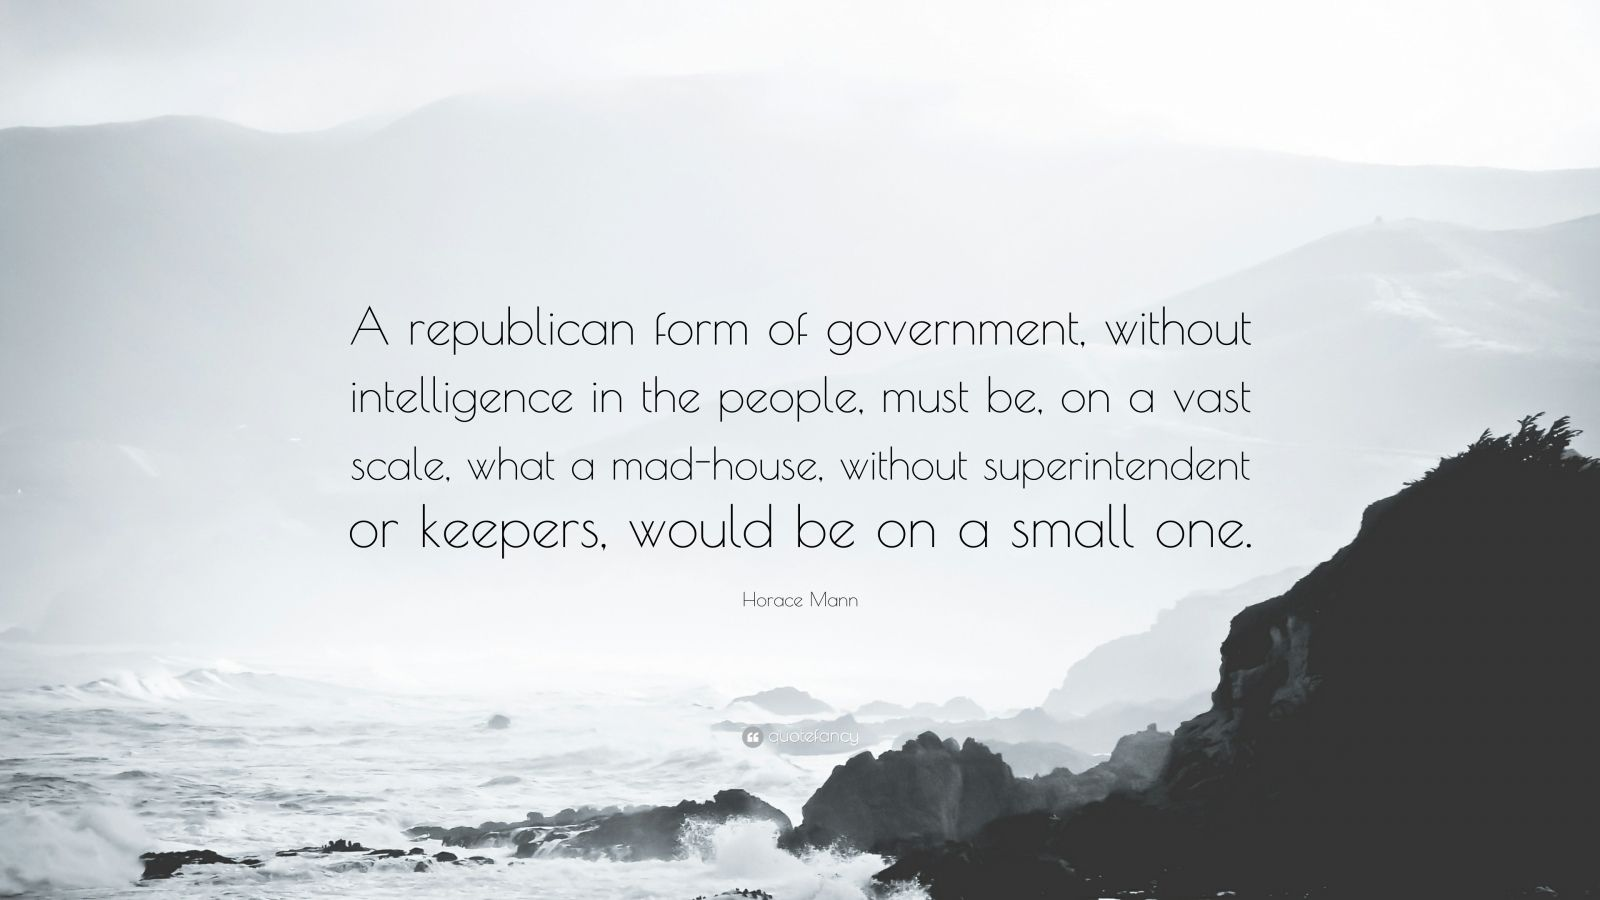 """Horace Mann Quote: """"A republican form of government, without intelligence in the people, must be, on a vast scale, what a mad-house, without superintendent or keepers, would be on a small one."""""""